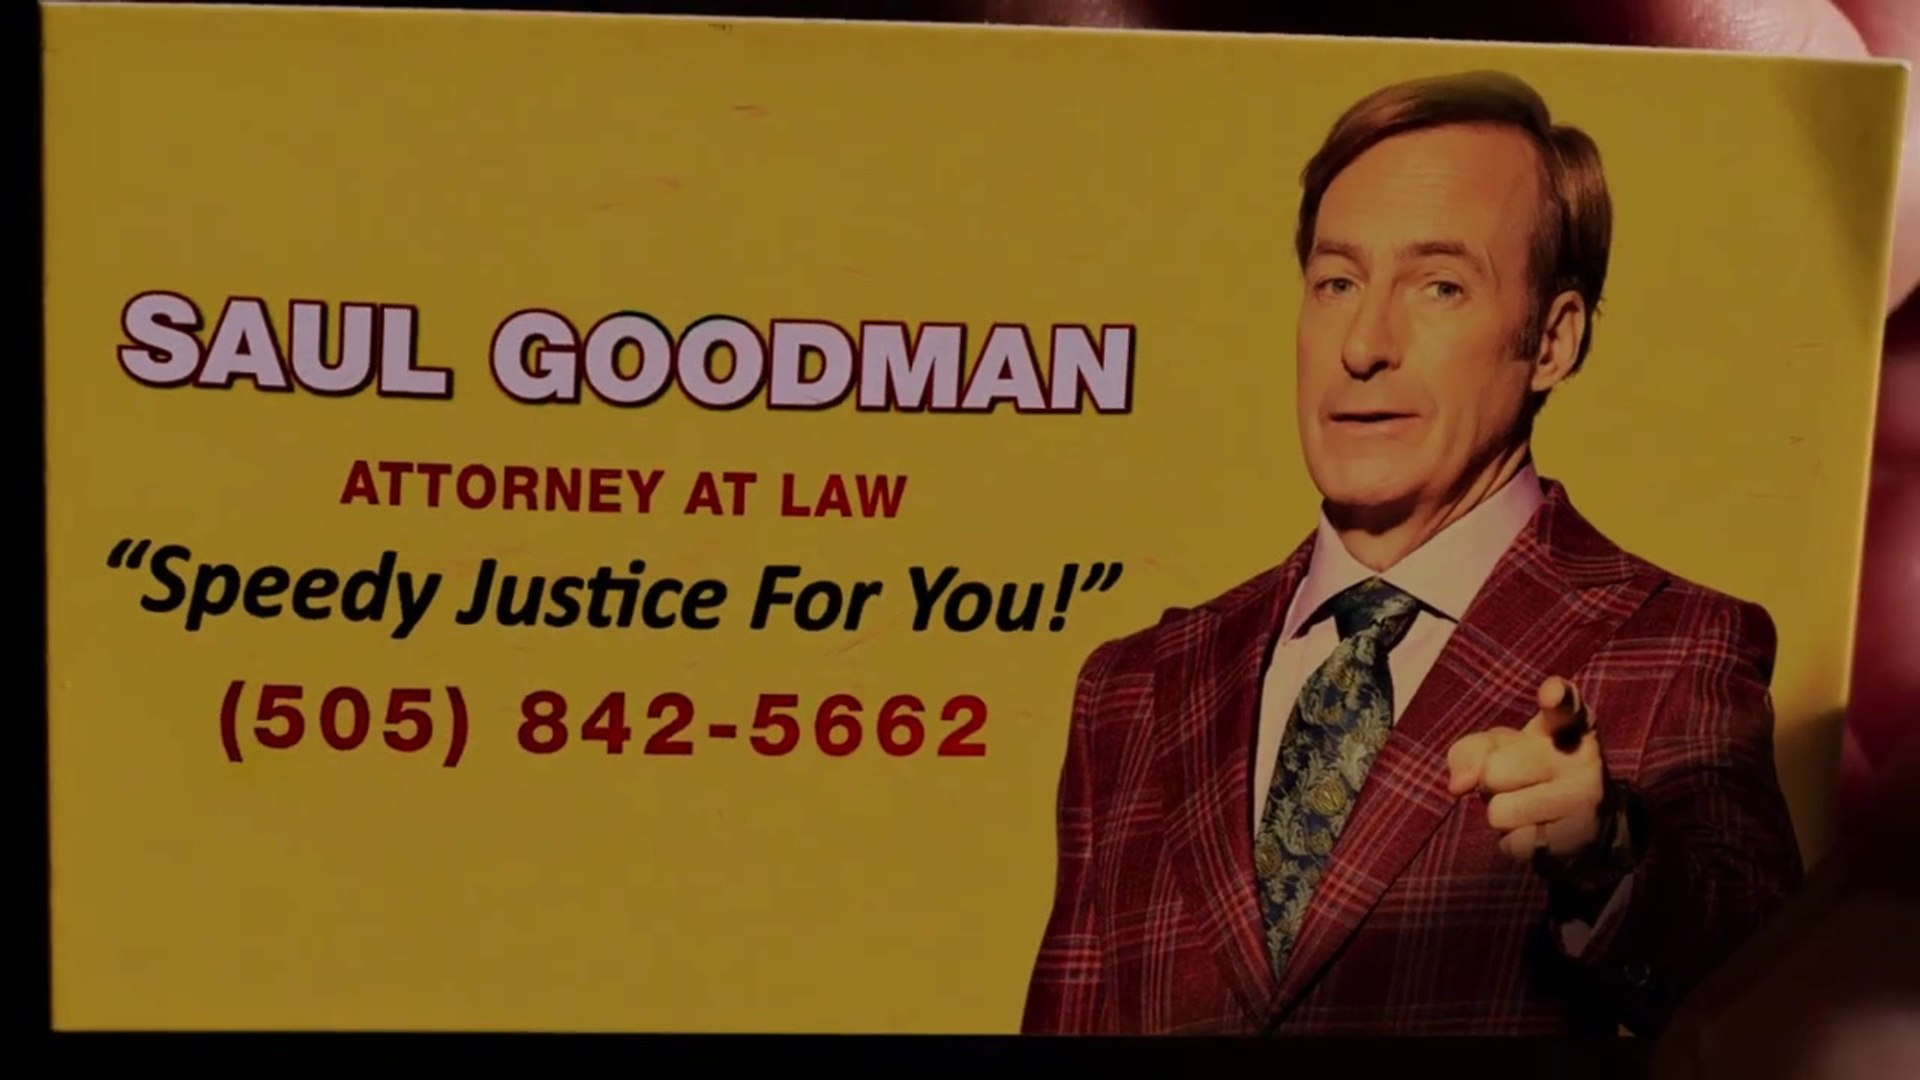 Better Call Saul Season 5 Speedy Justice For You